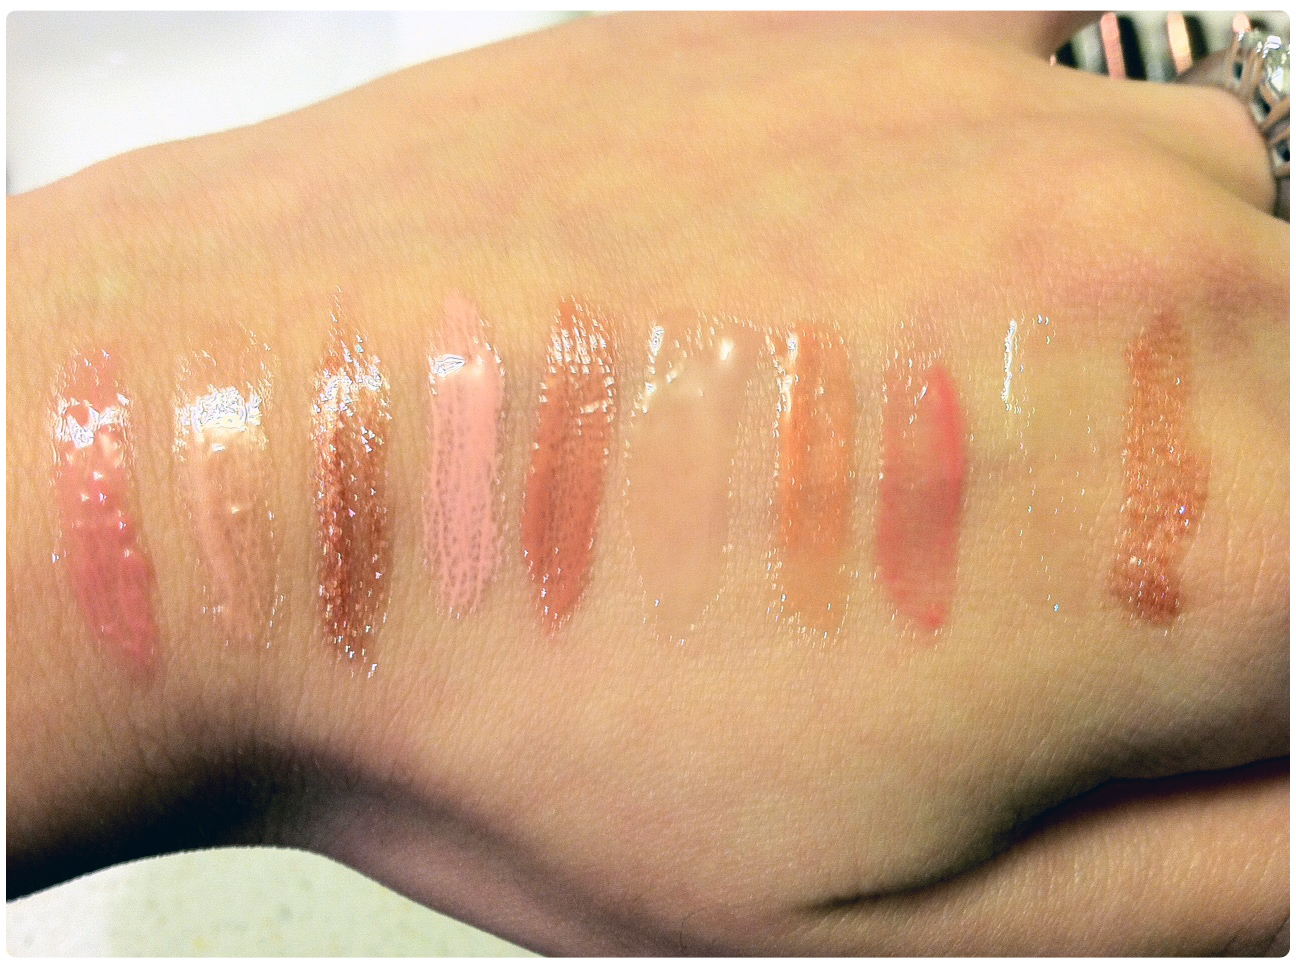 As you can see in the swatches